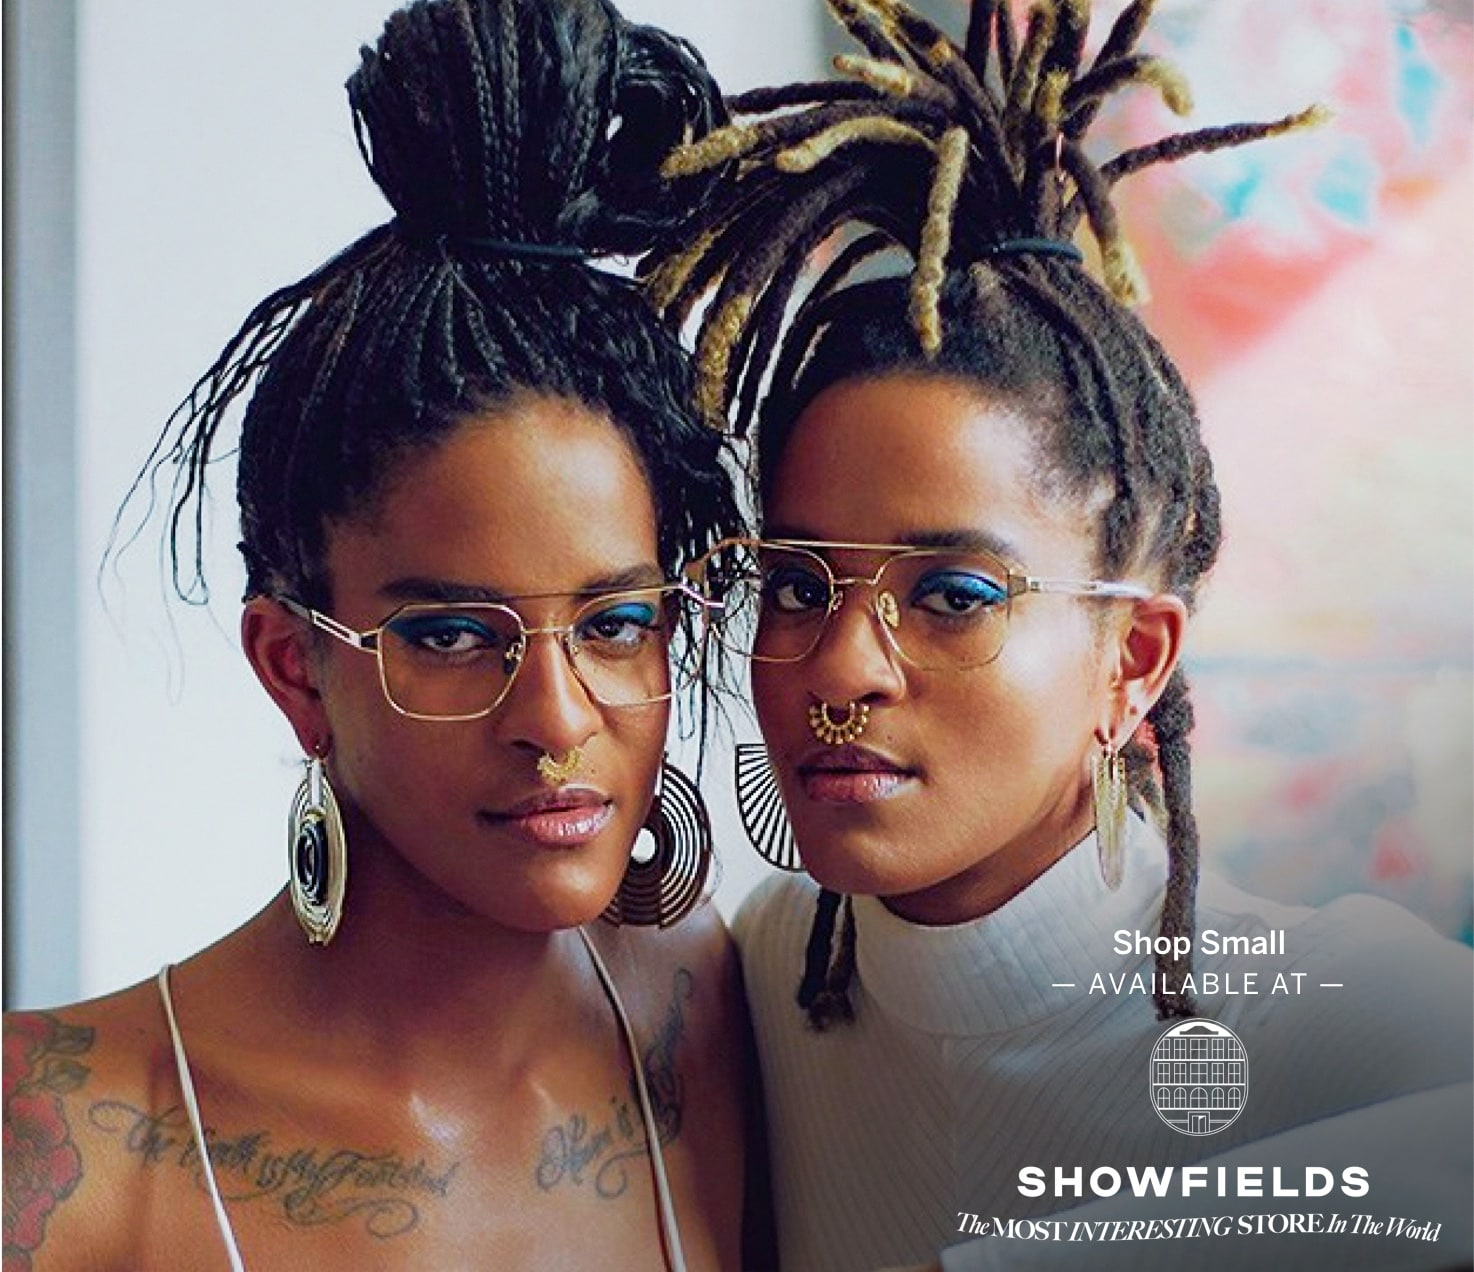 Two women posing and wearing their company eyewear